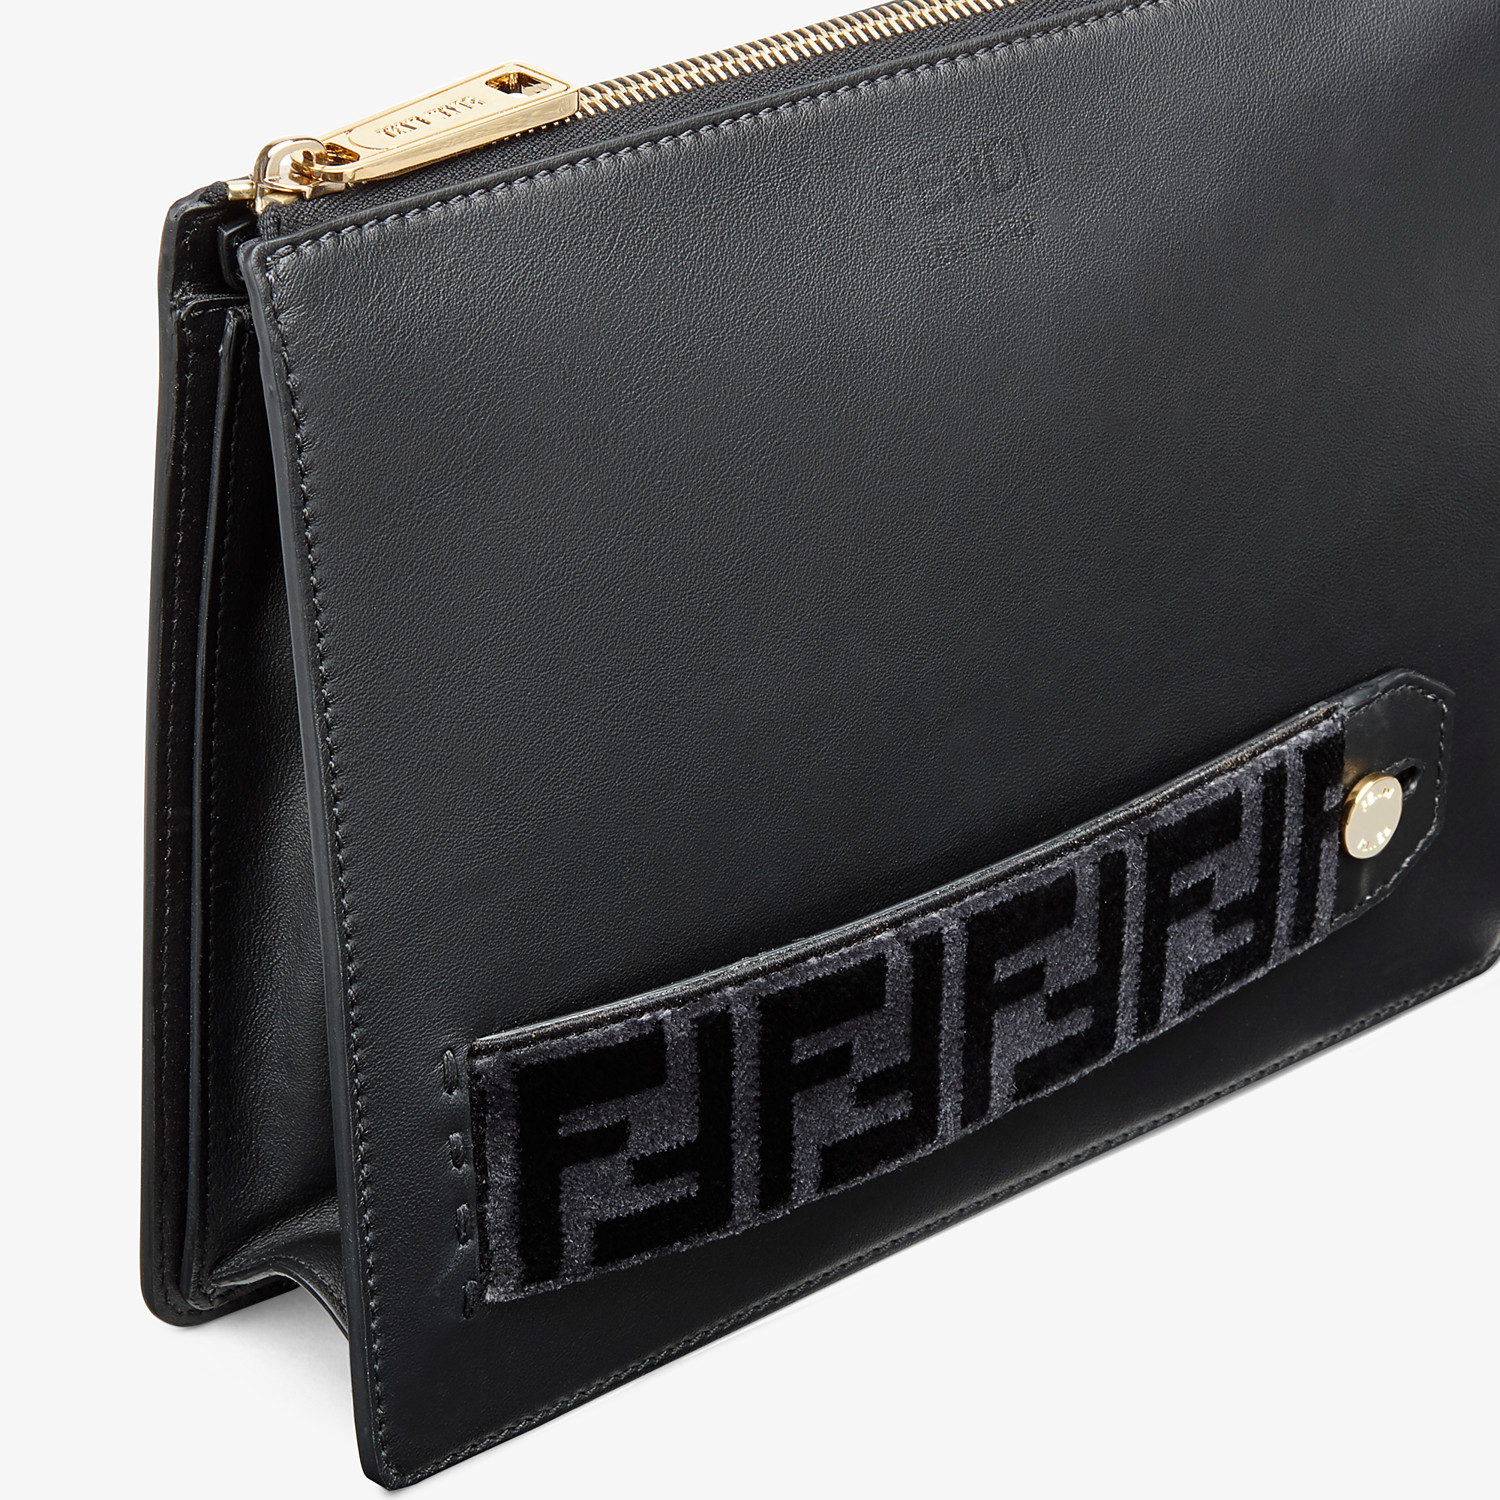 FENDI CLUTCH - Fendi clutch for Jackson Wang in leather - view 5 detail